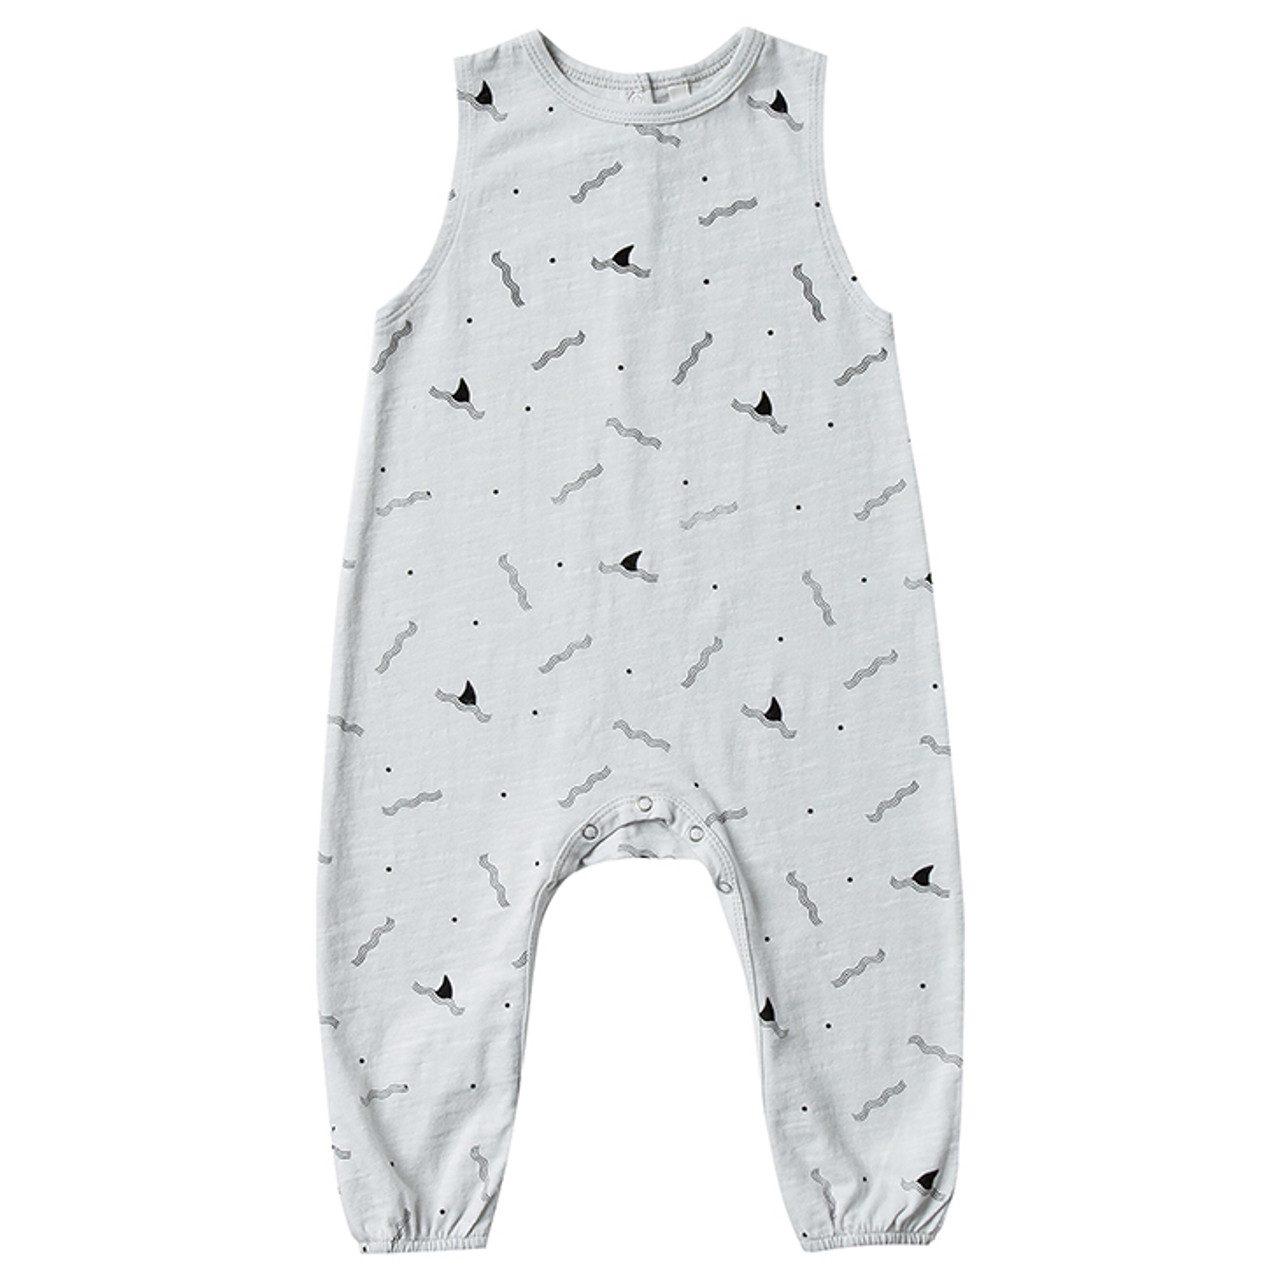 6502103db Rylee & Cru Mills Jumpsuit, Shark Fin - Spearmint Ventures, LLC